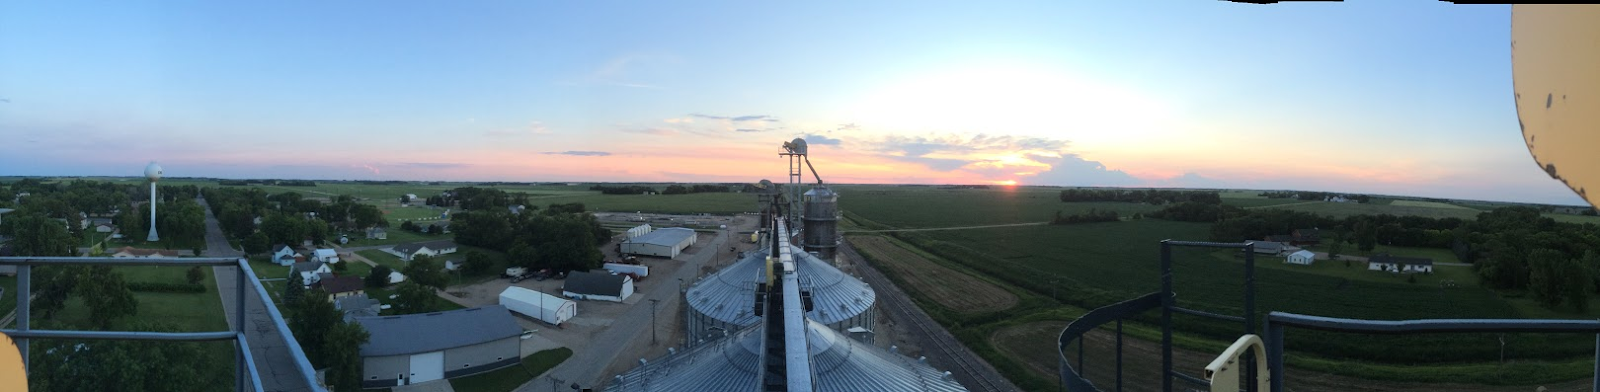 From the top of the grain elevator in Chokio, MN